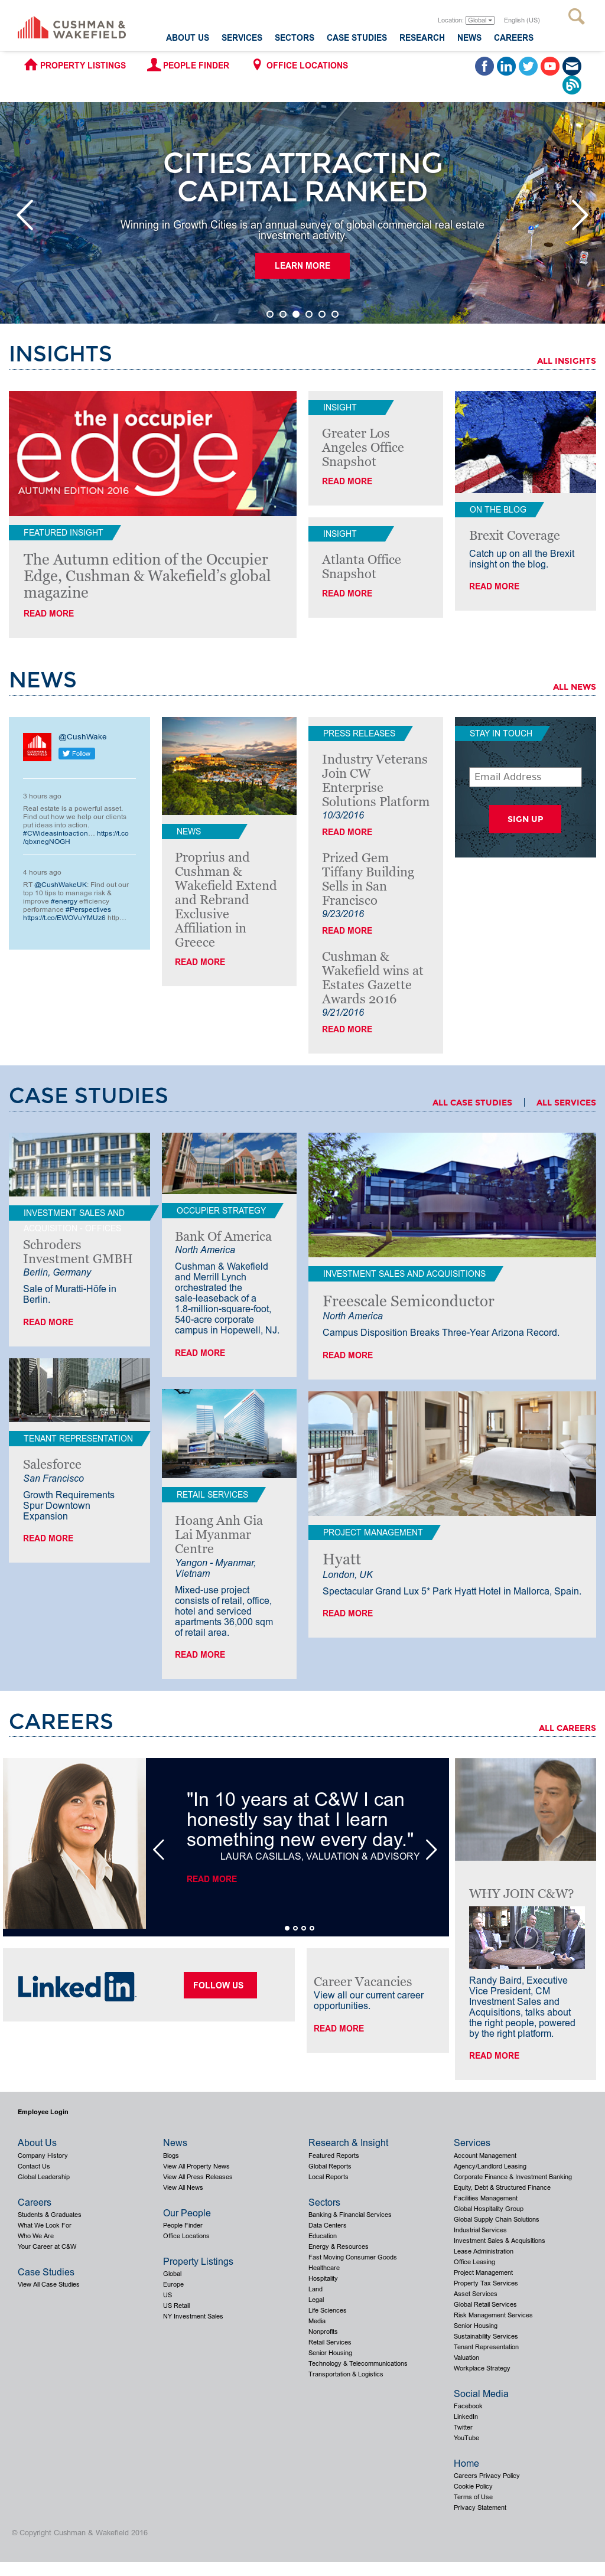 Cushman & Wakefield Competitors, Revenue and Employees